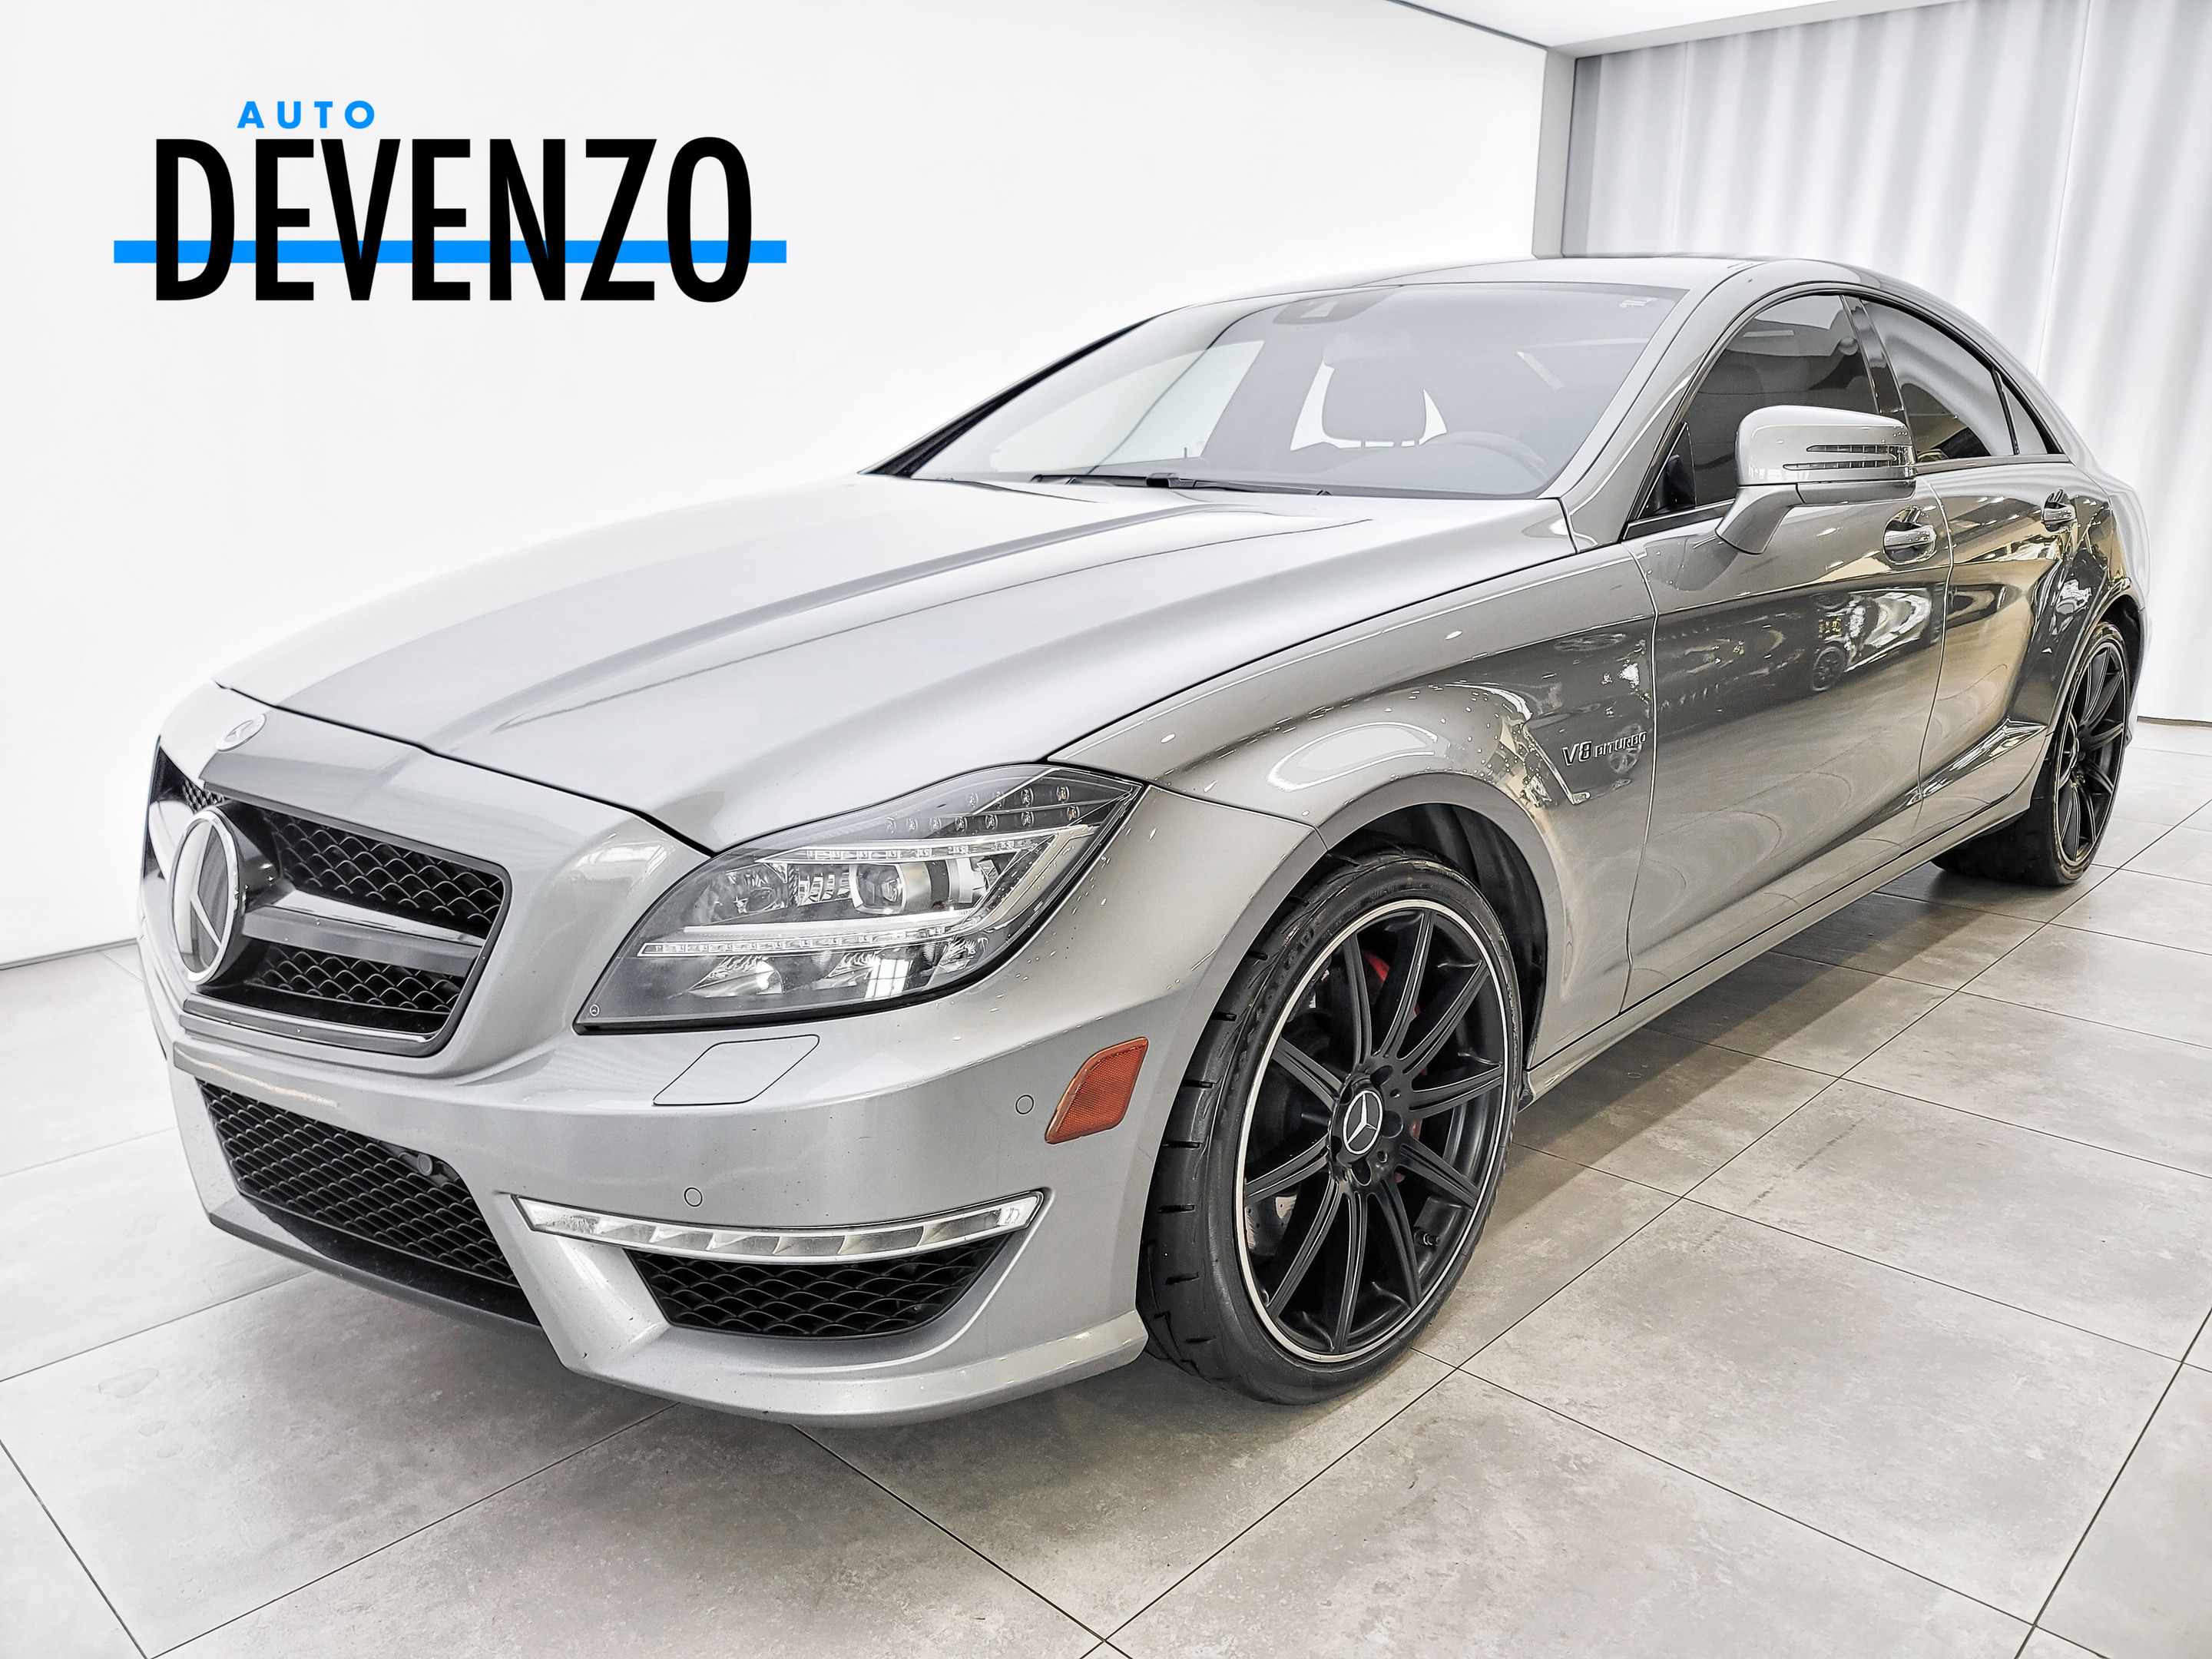 2014 Mercedes-Benz CLS-Class CLS63 AMG S-Model 577hp Distronic Cruise complet